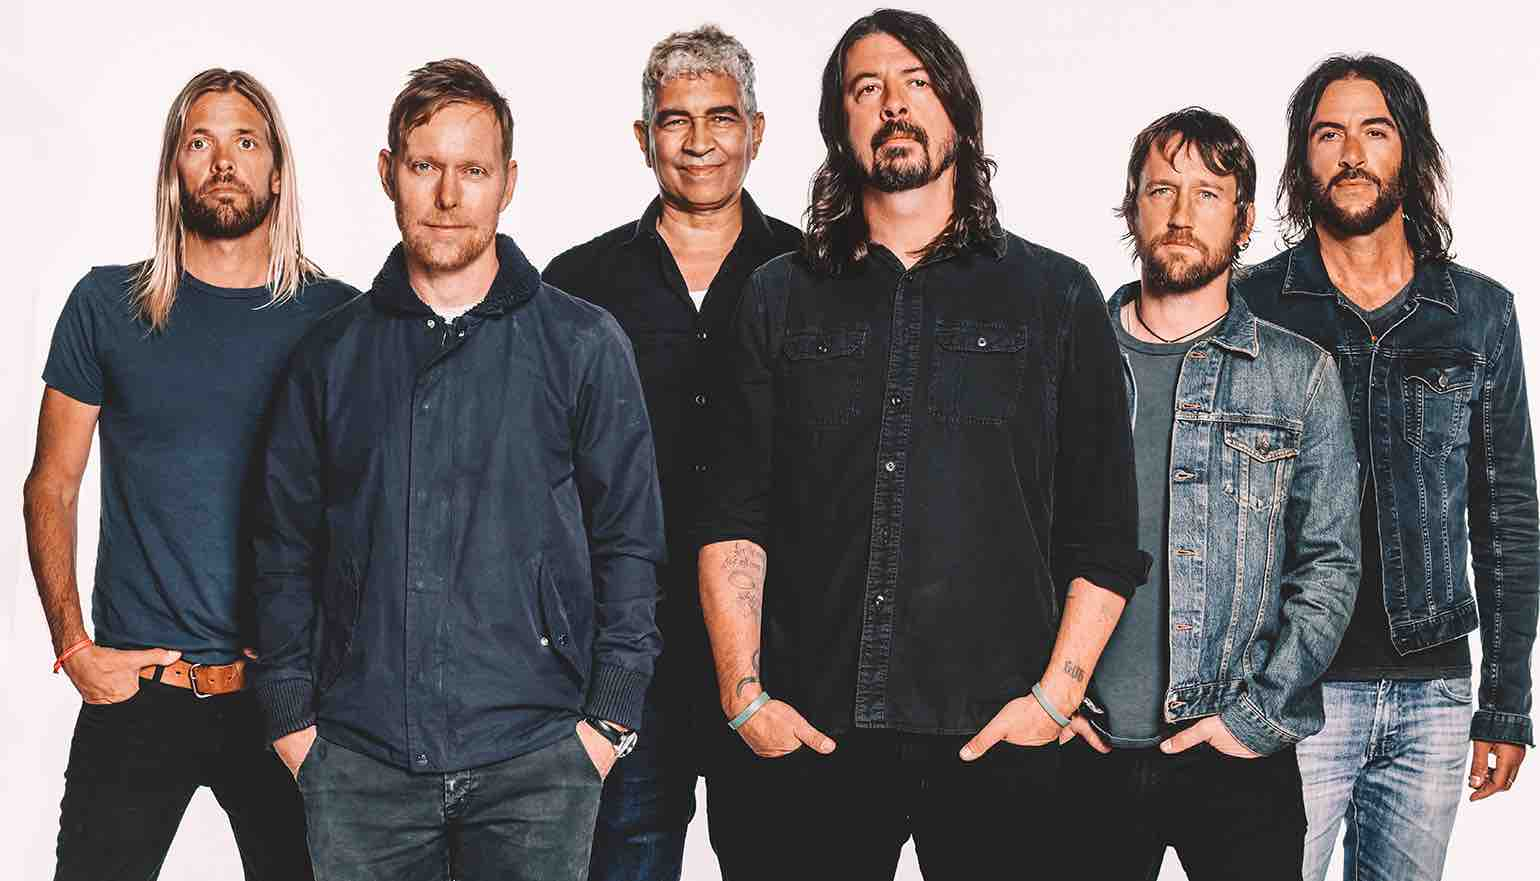 At A Recent Foo Fighters Show Taylor Hawkins Had A Hilarious Moment When He Pulled Down His Van Halen Themed Shorts Onstage Fortunately For Hawkins And